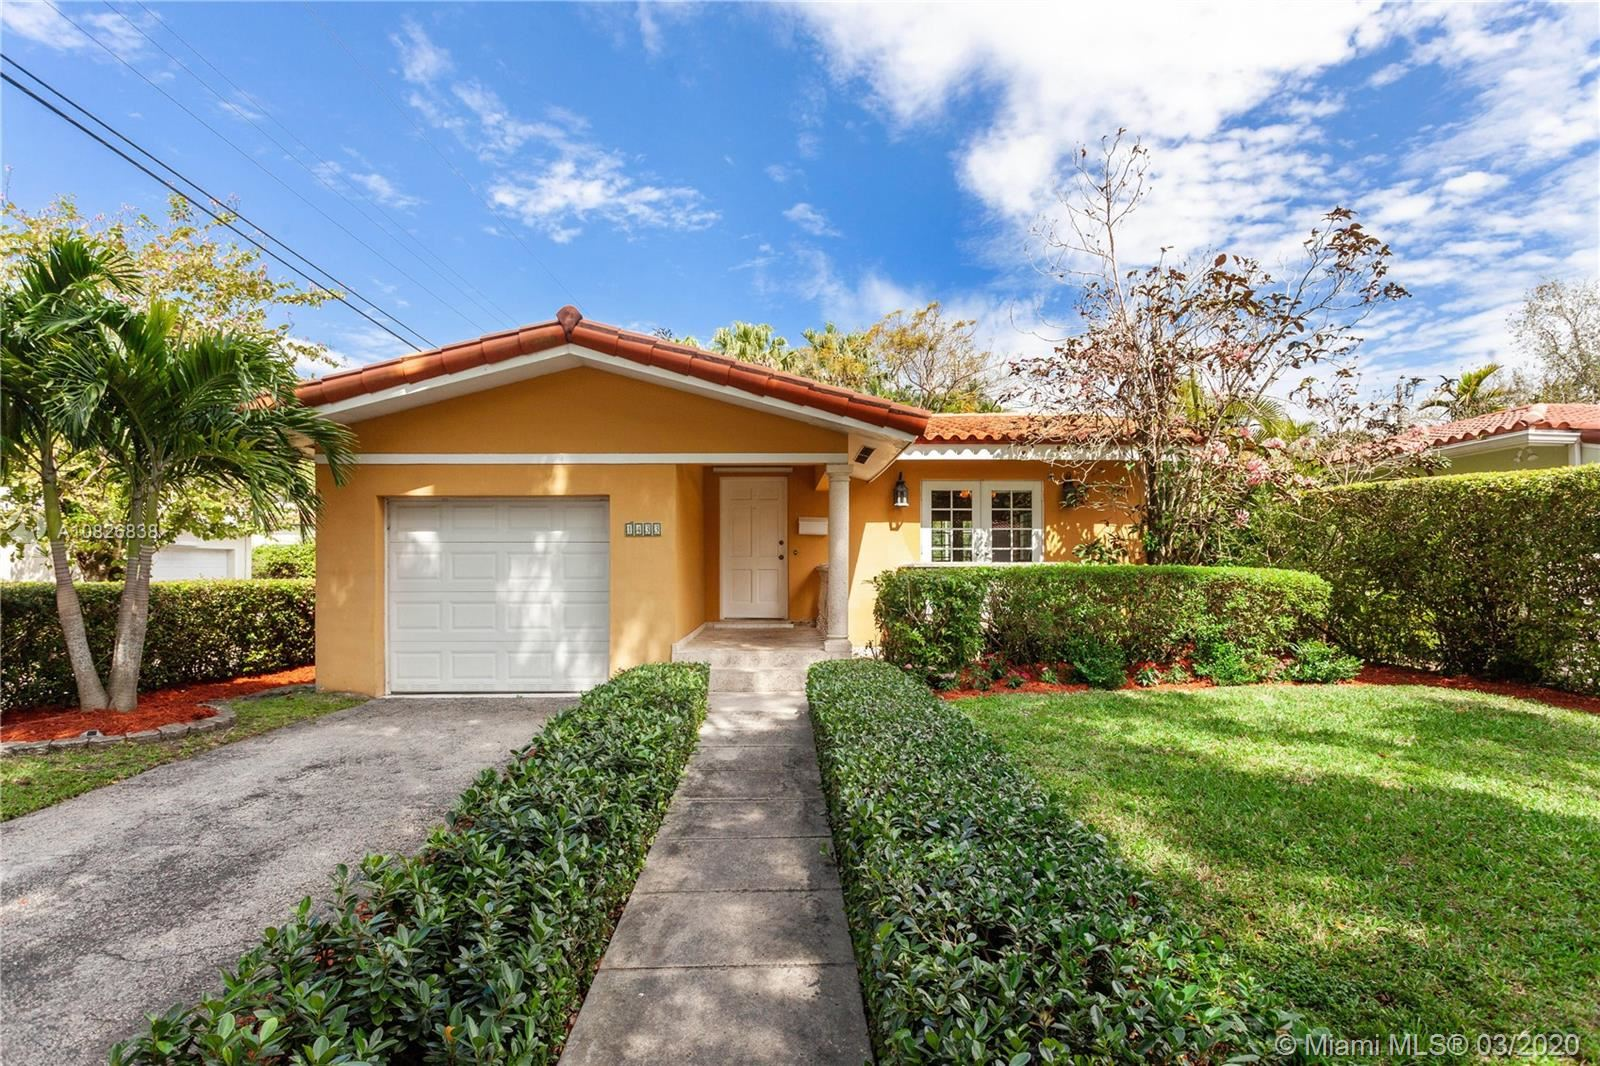 1433 Messina Ave, Coral Gables, FL 33134 - #: A10826838